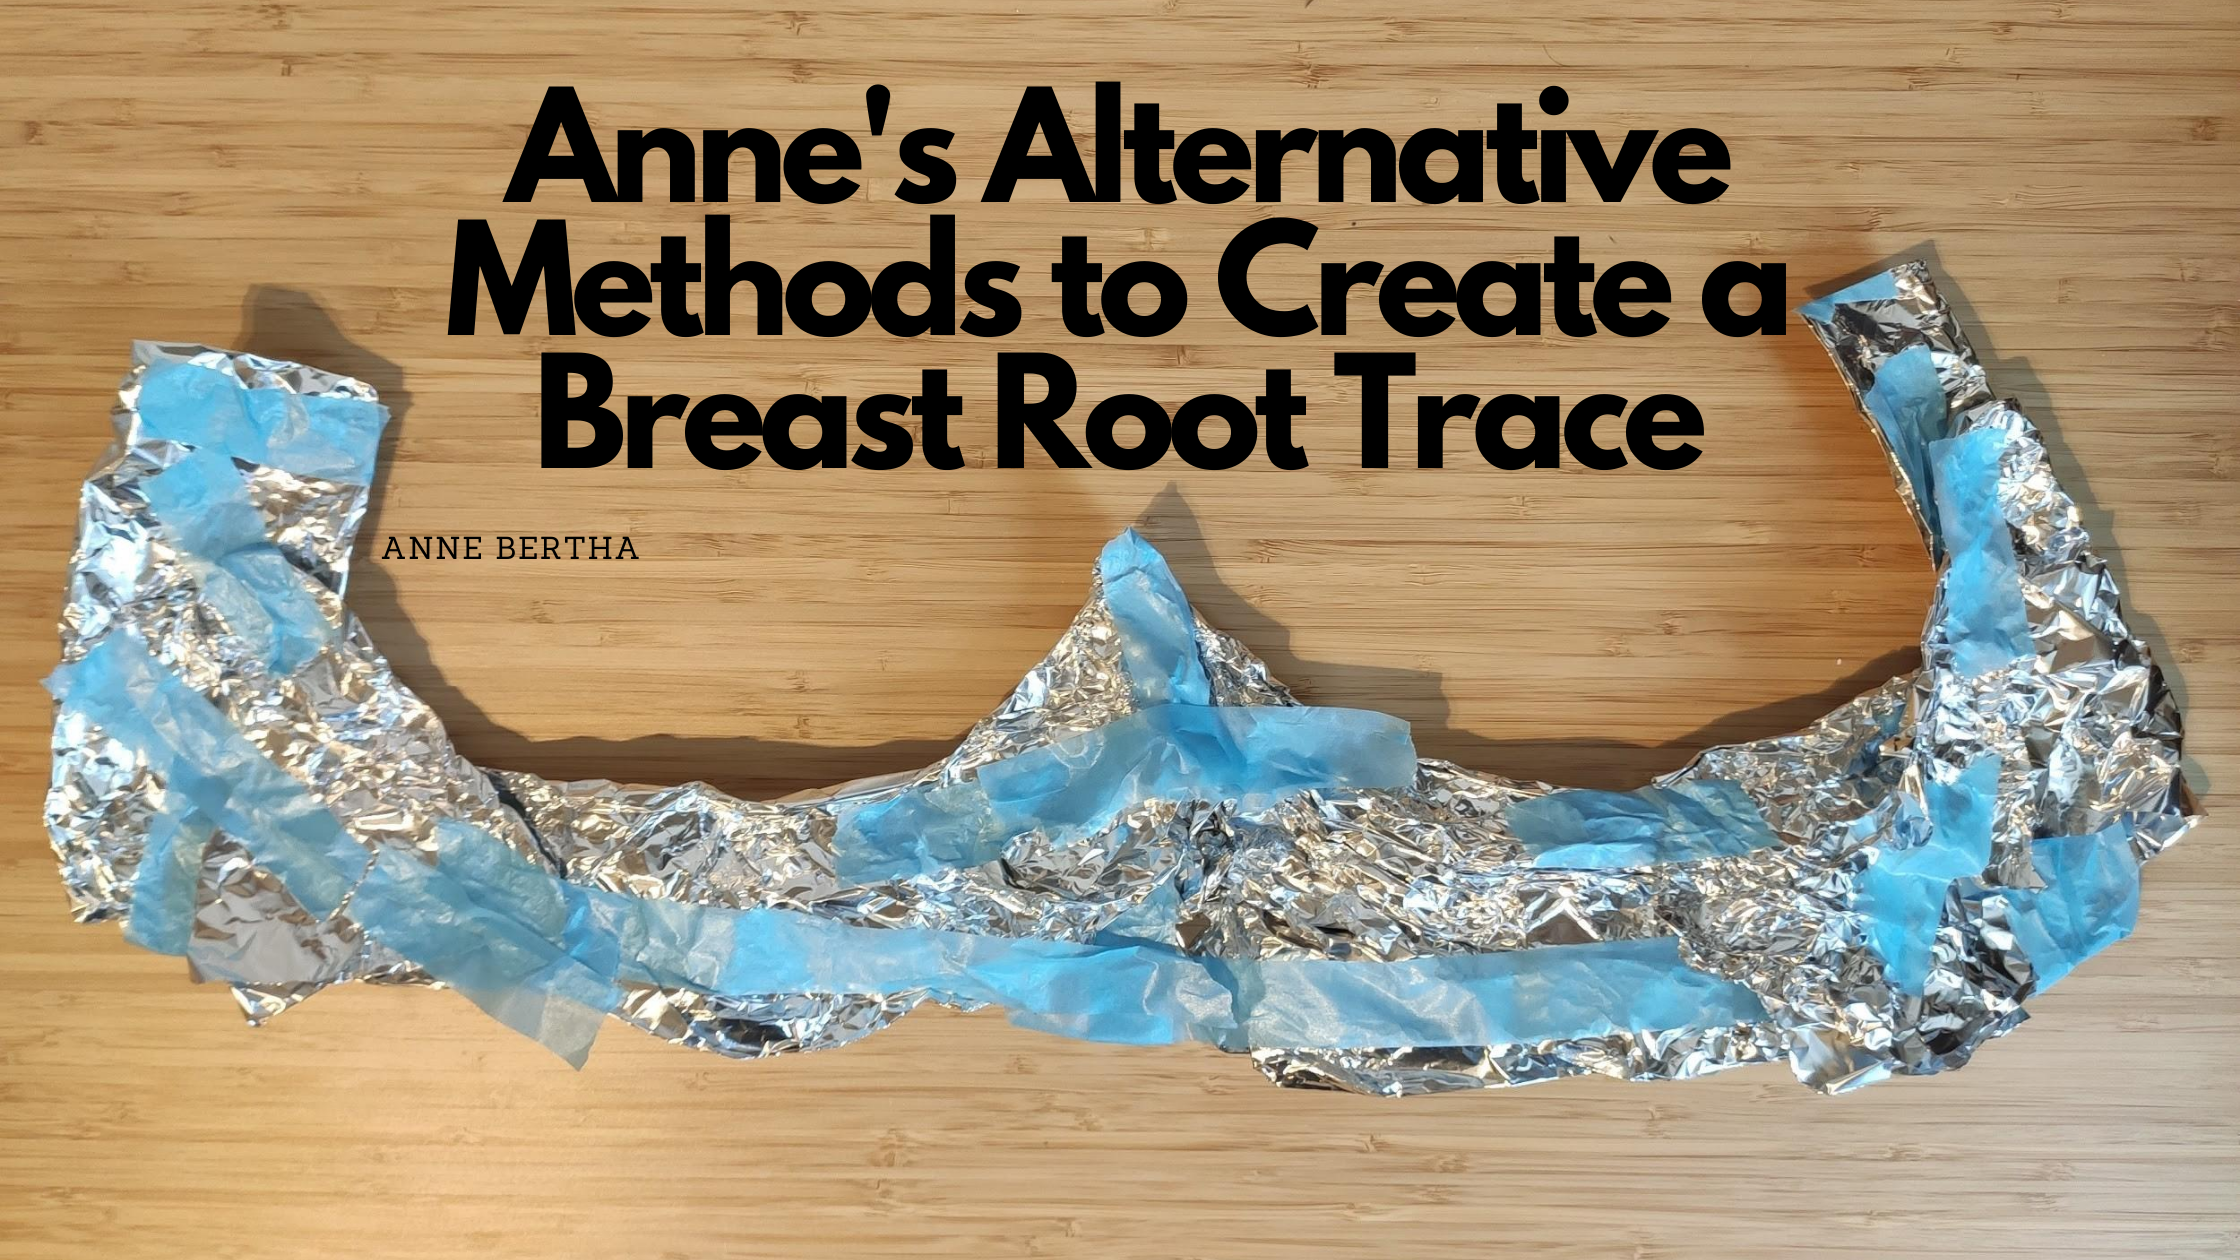 Anne's Alternative Tests on Getting the Right Wire Trace